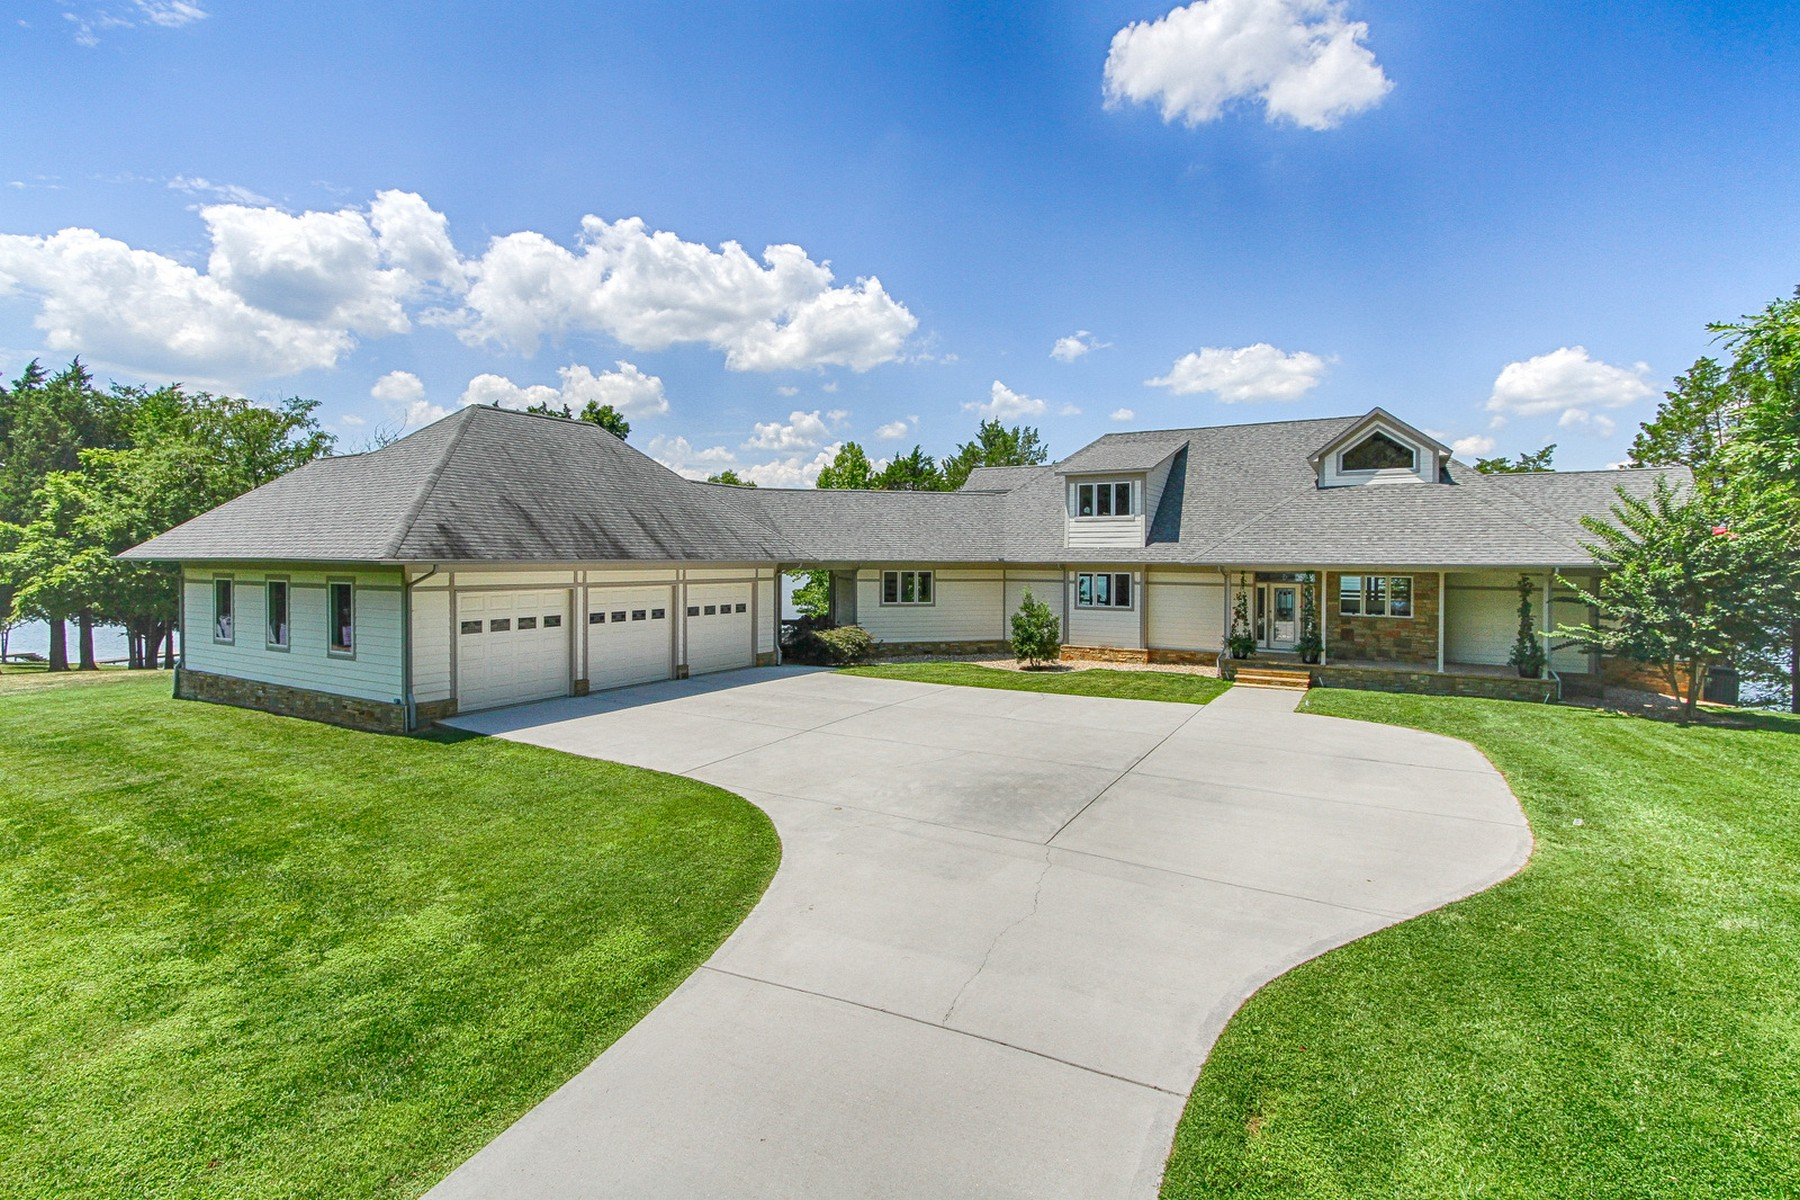 Single Family Home for Sale at Lakefront Contemporary Masterpiece 130 Shawnee Point Ten Mile, Tennessee 37880 United States